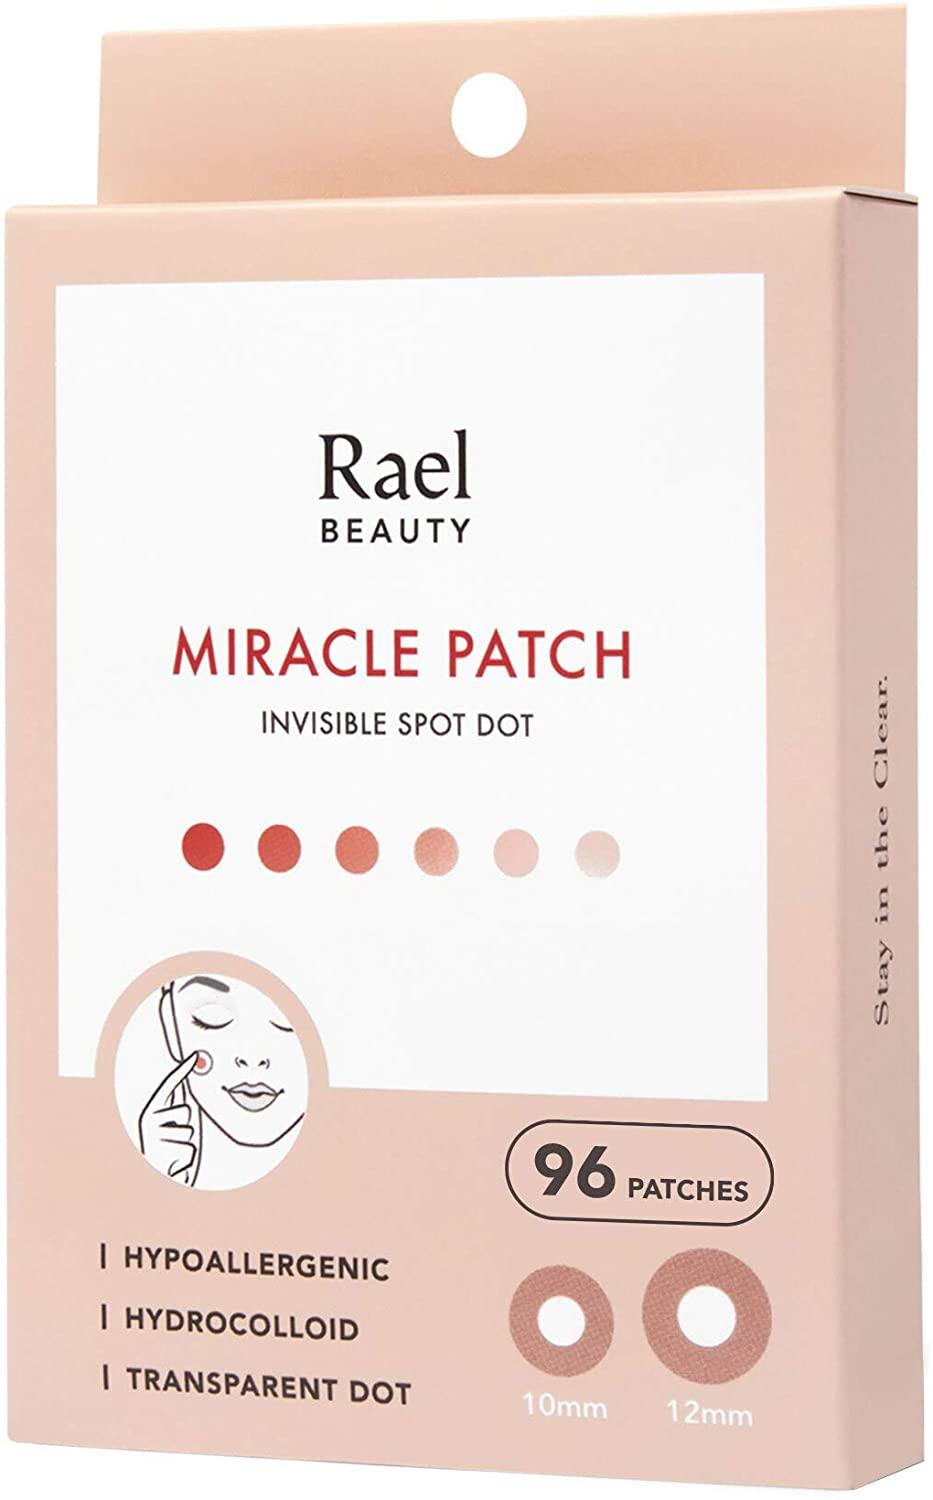 Rael Acne Pimple Healing Patch - Amazon, $24